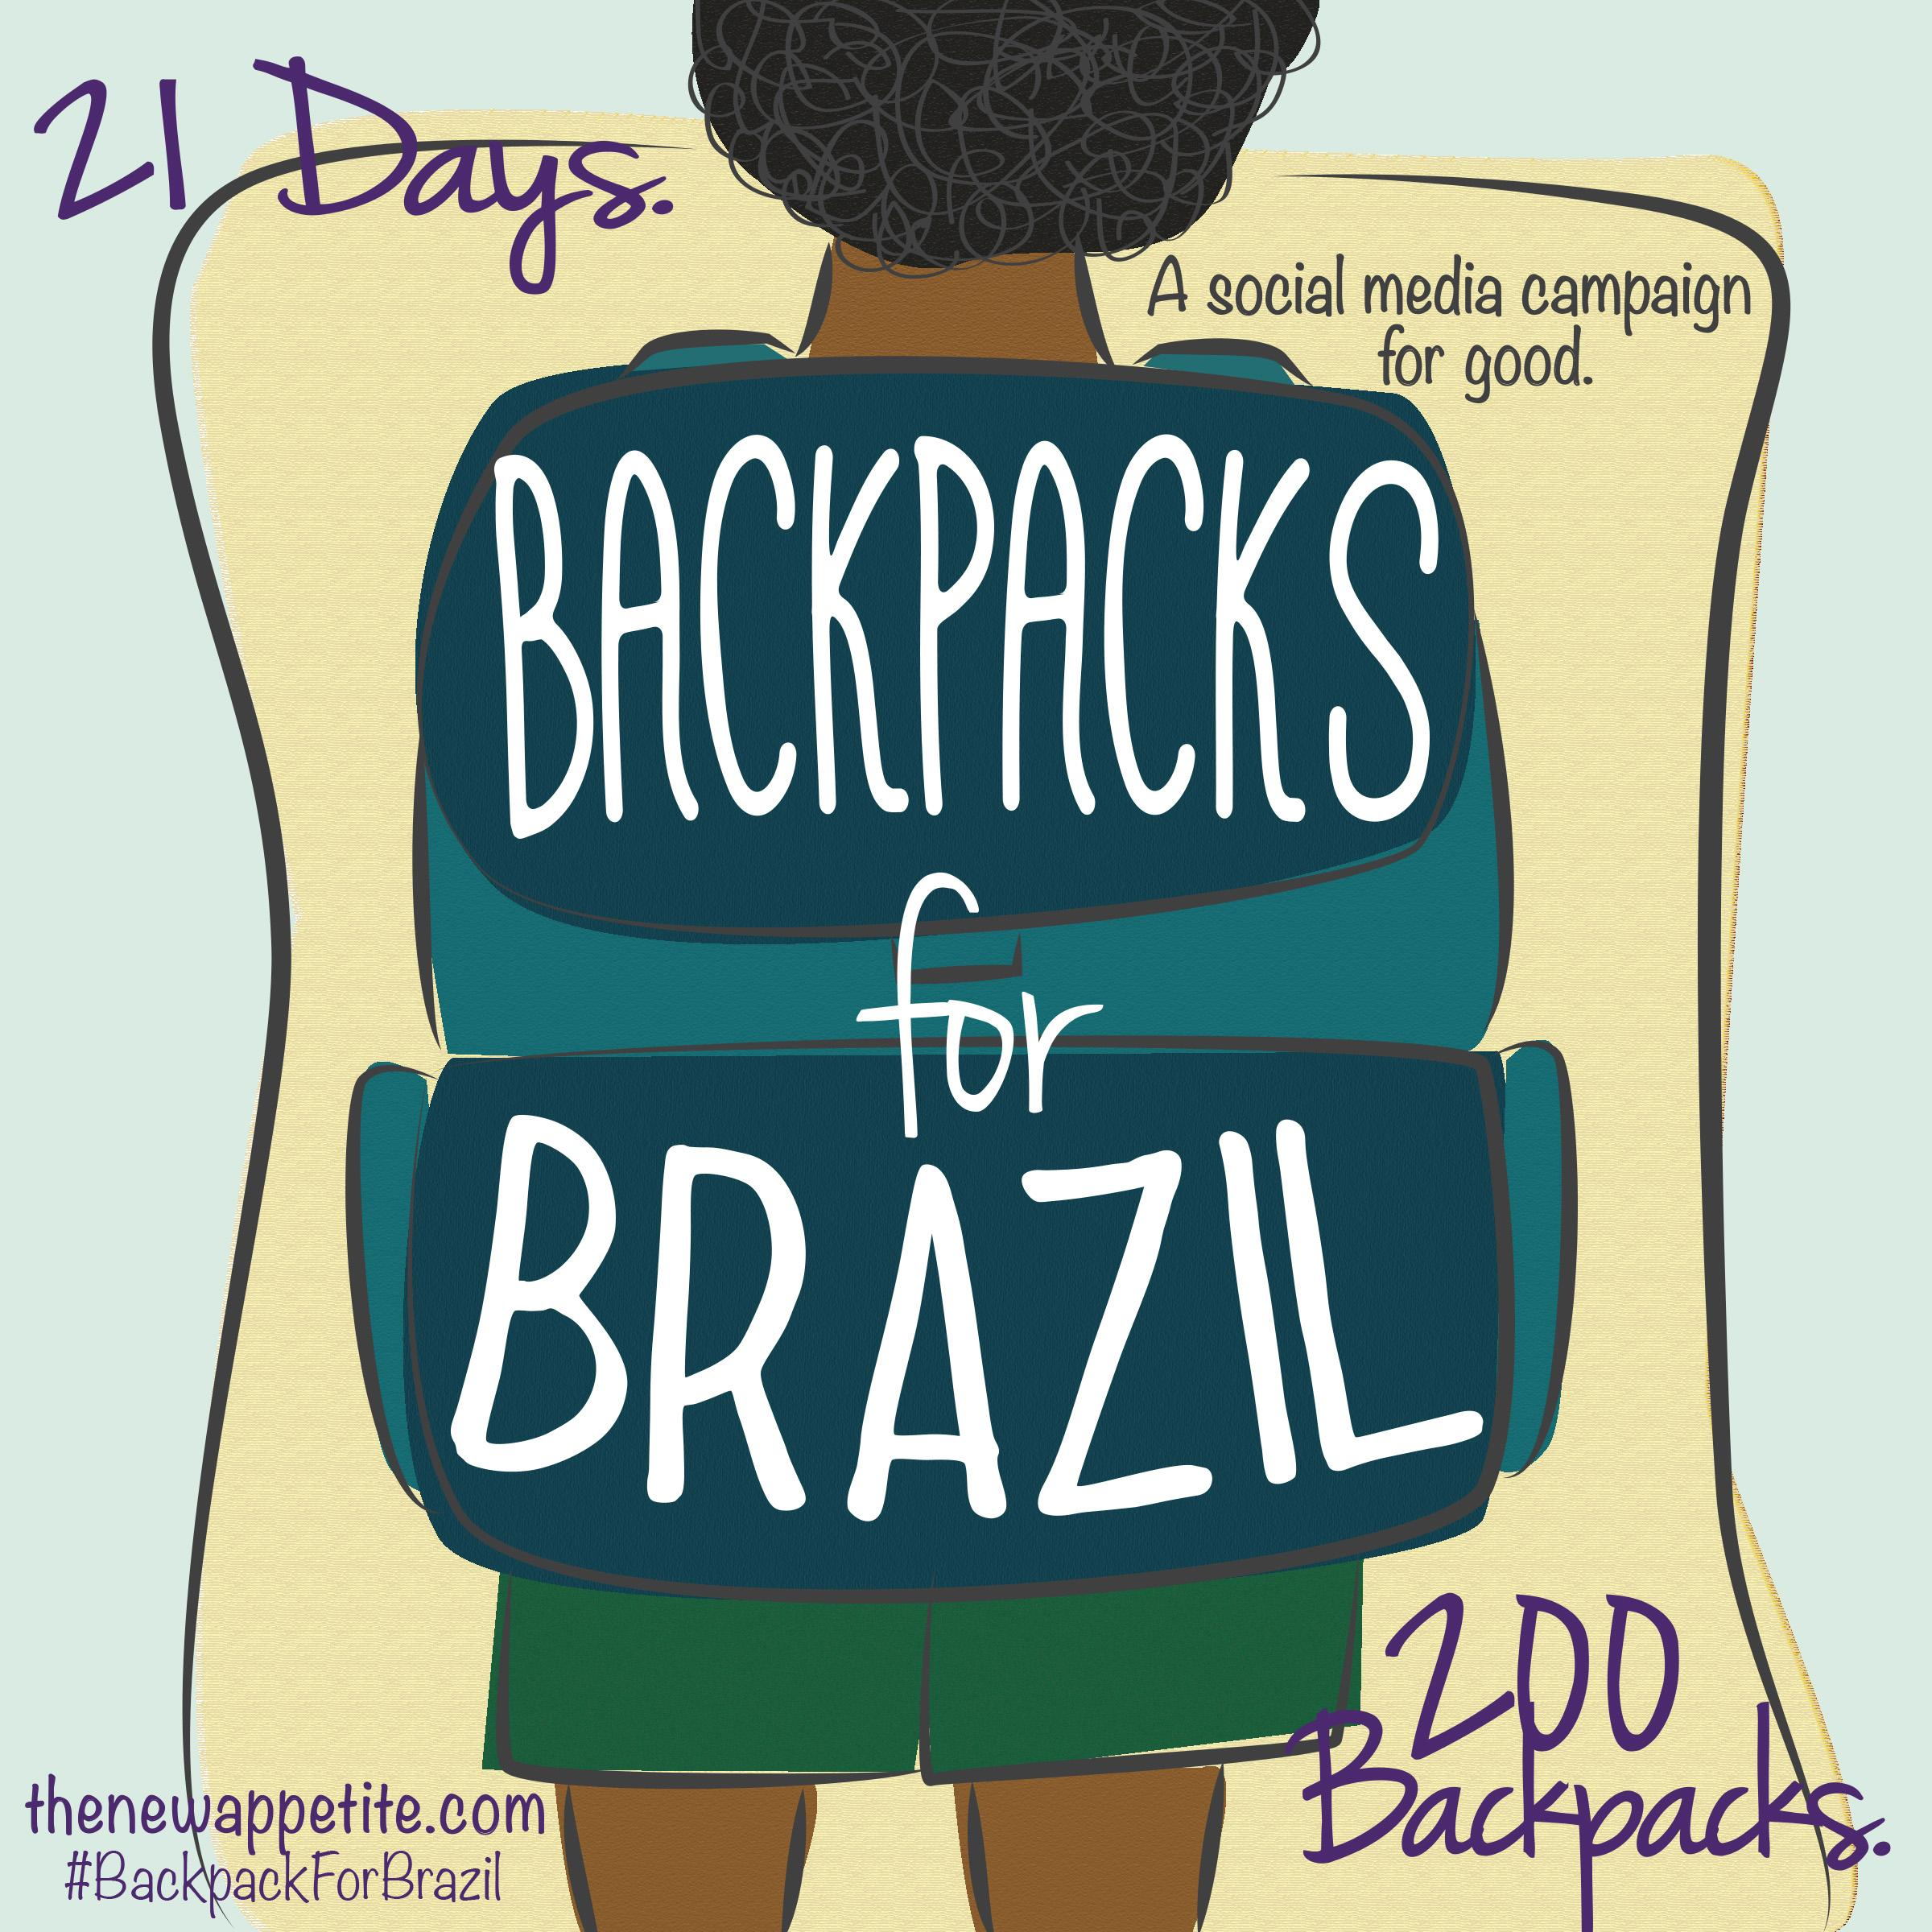 Backpacks for Brazil - image 1 - student project